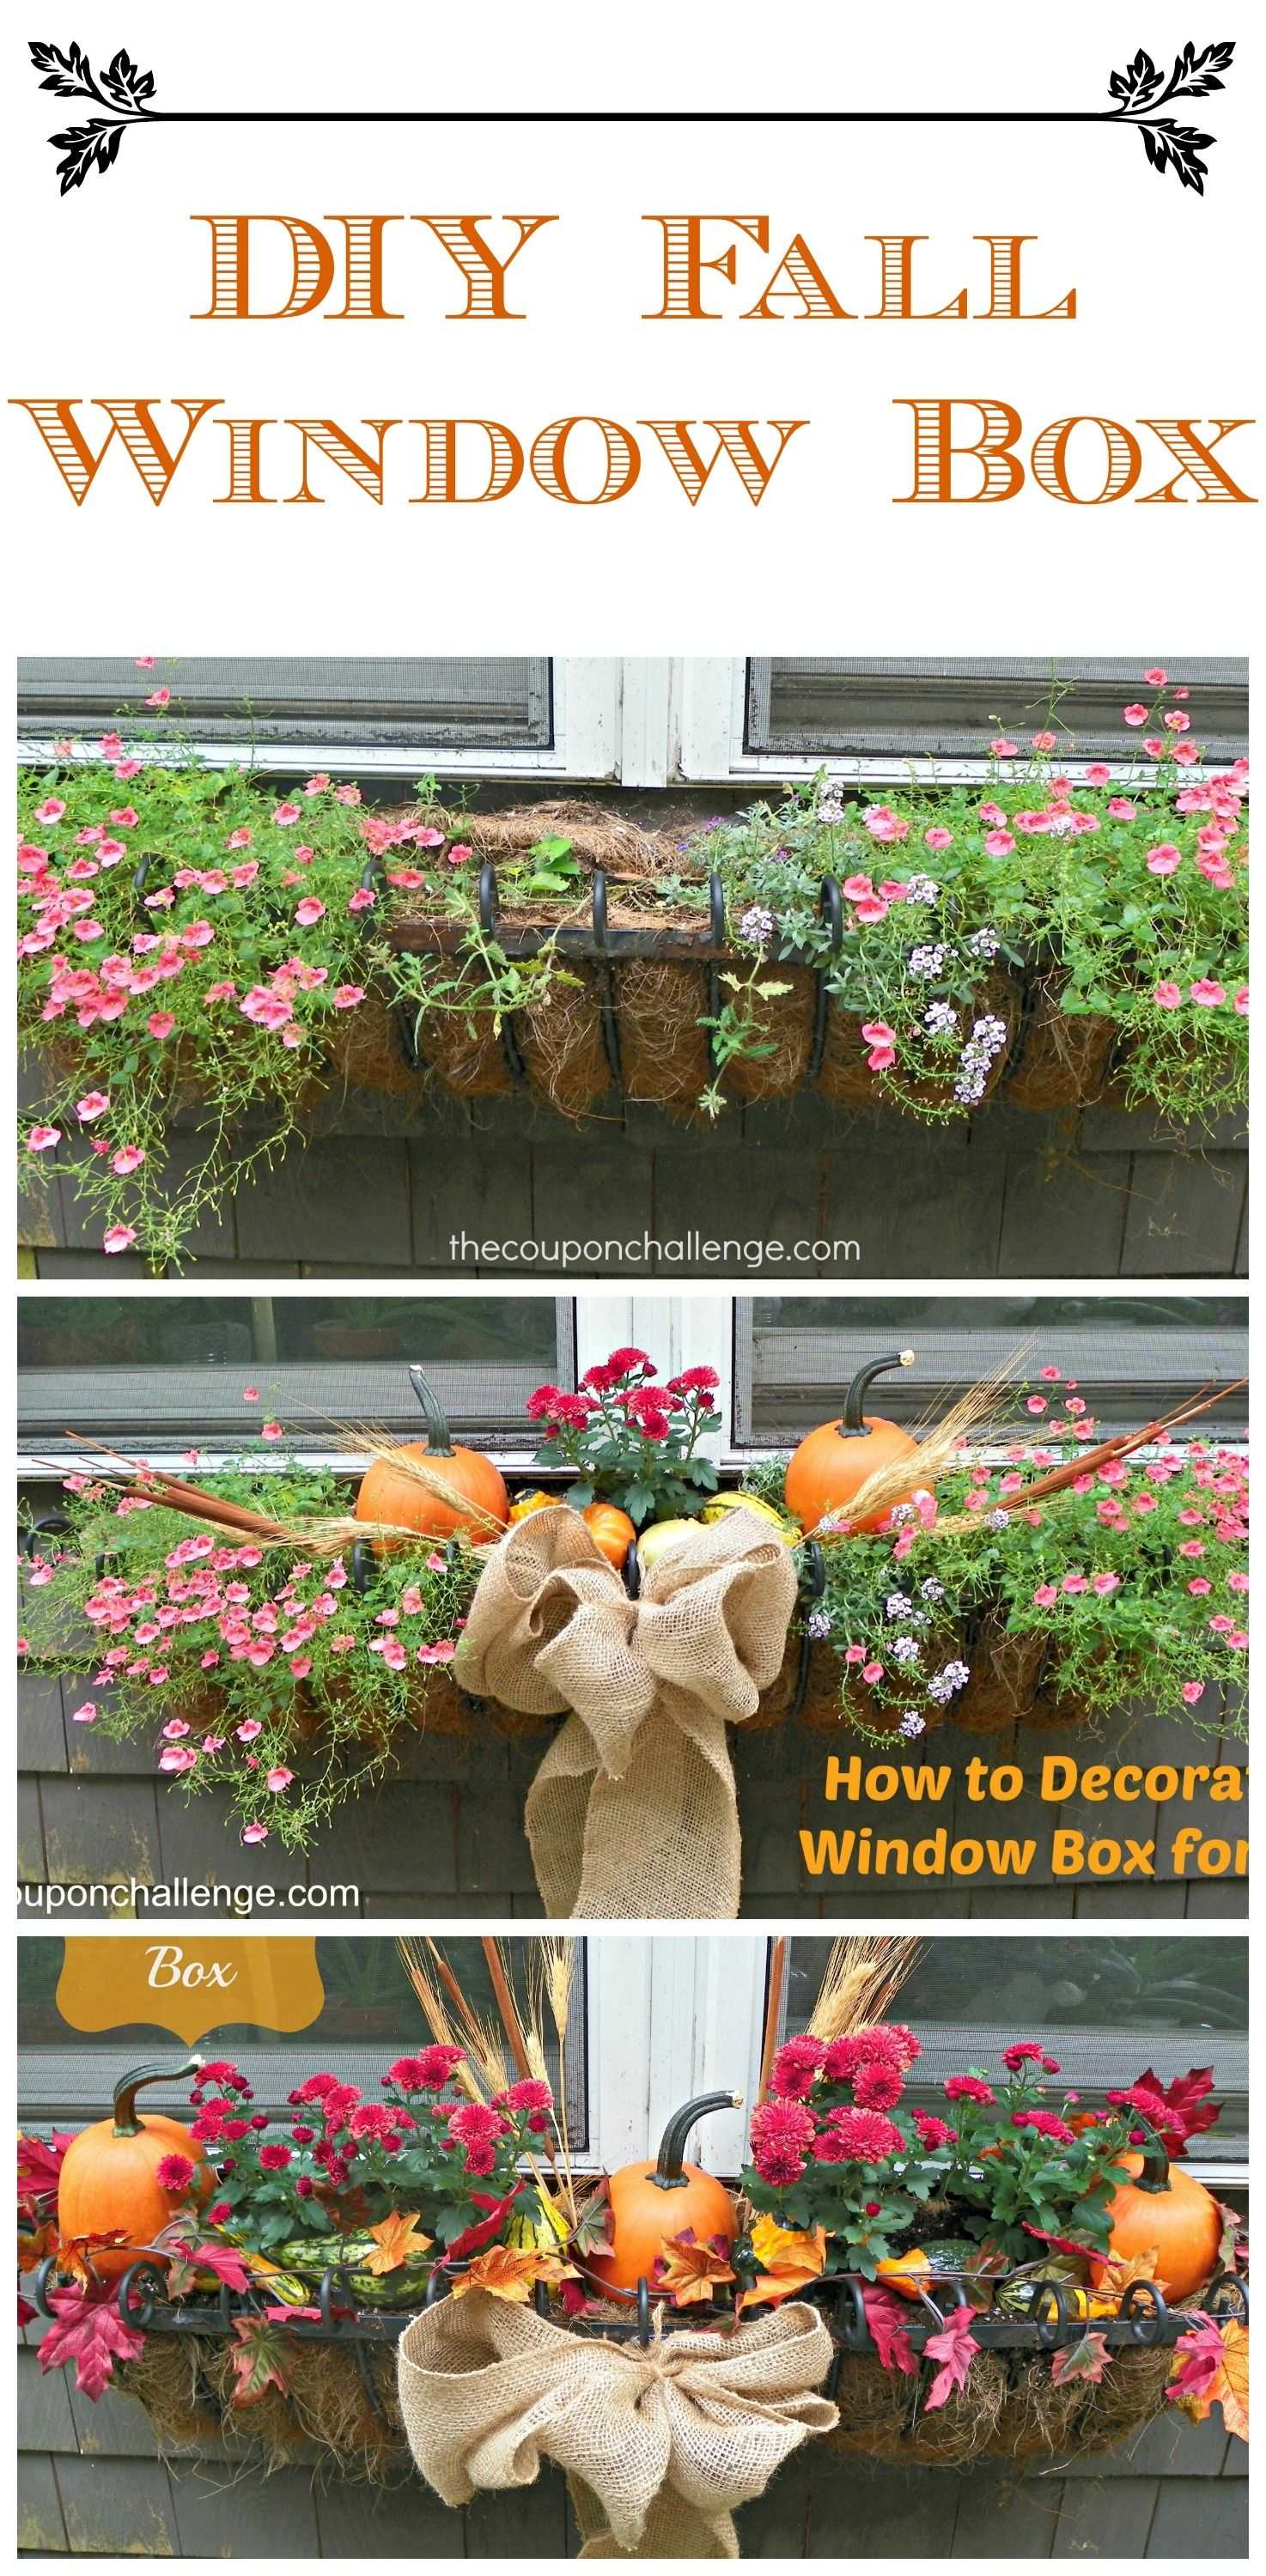 Diy Fall Window Box Flowers Autumn Garden Gardening Windows Home Ideas Gardens